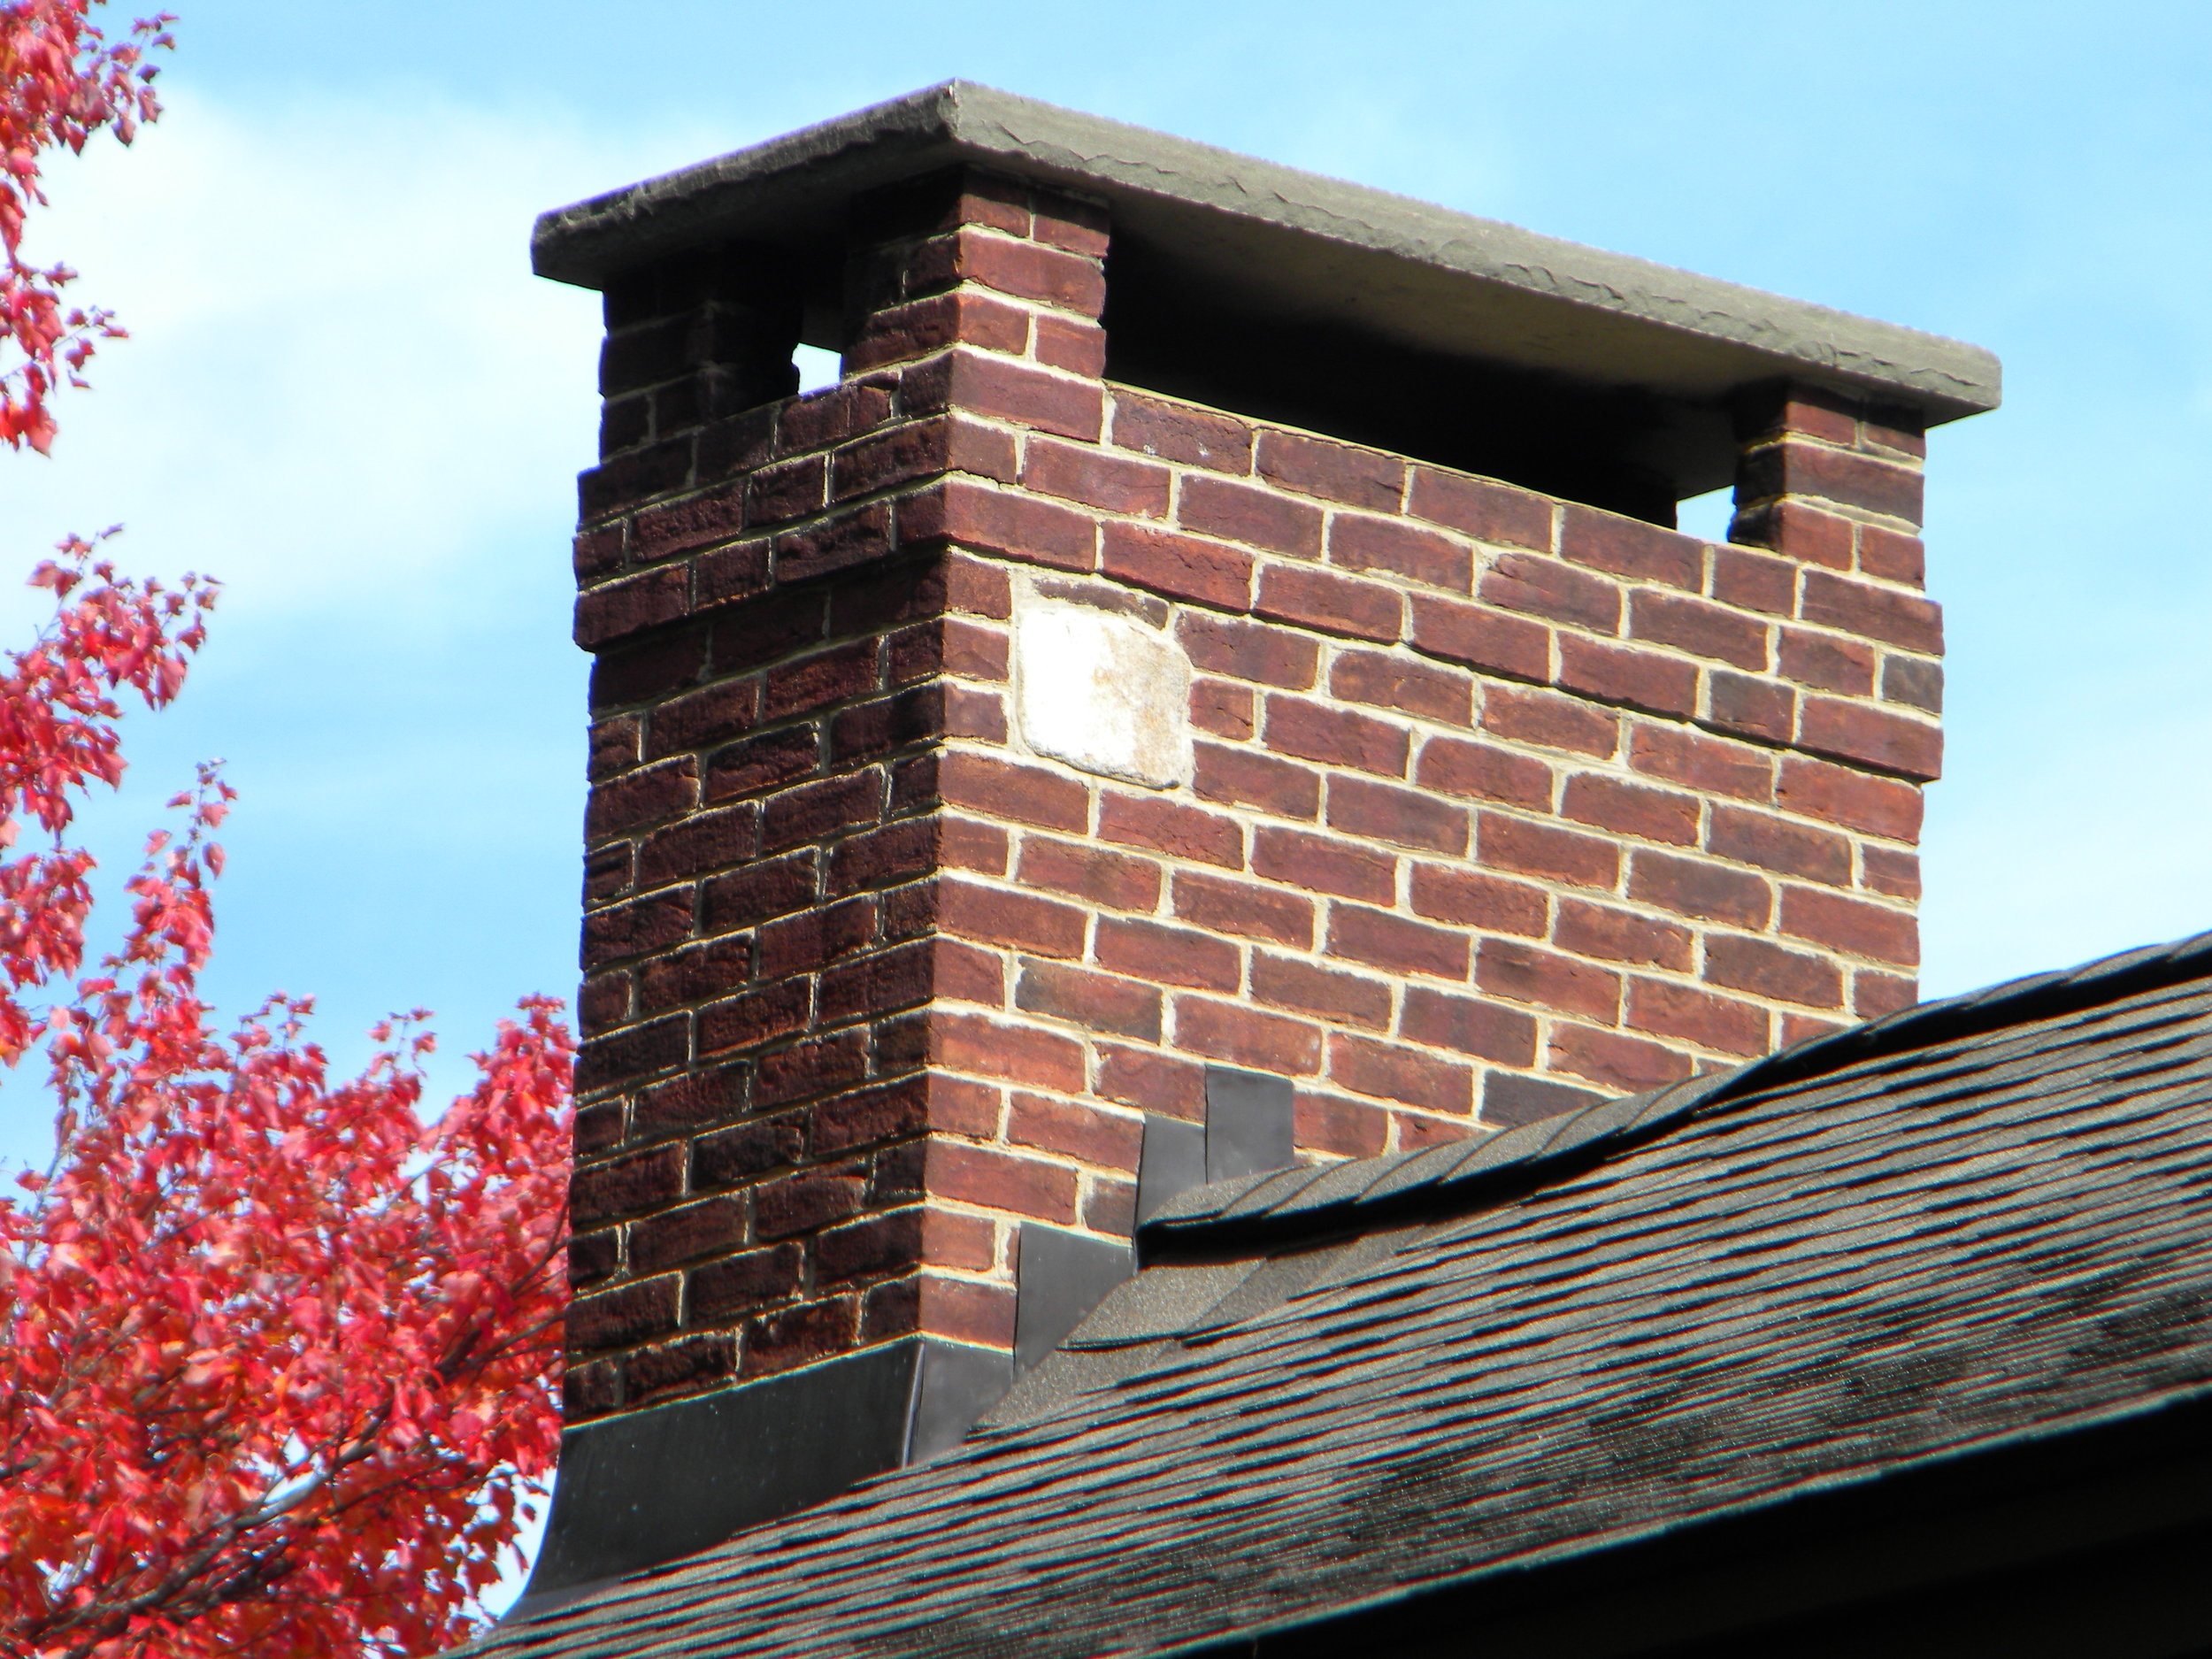 This is a close-up of the chimney shown above. Note the corbeling, counterflashing on the sidewall (integrated with step flashing beneath the shingles), apron flashing in front, and stone rain cap. Photo by Jay Cox.